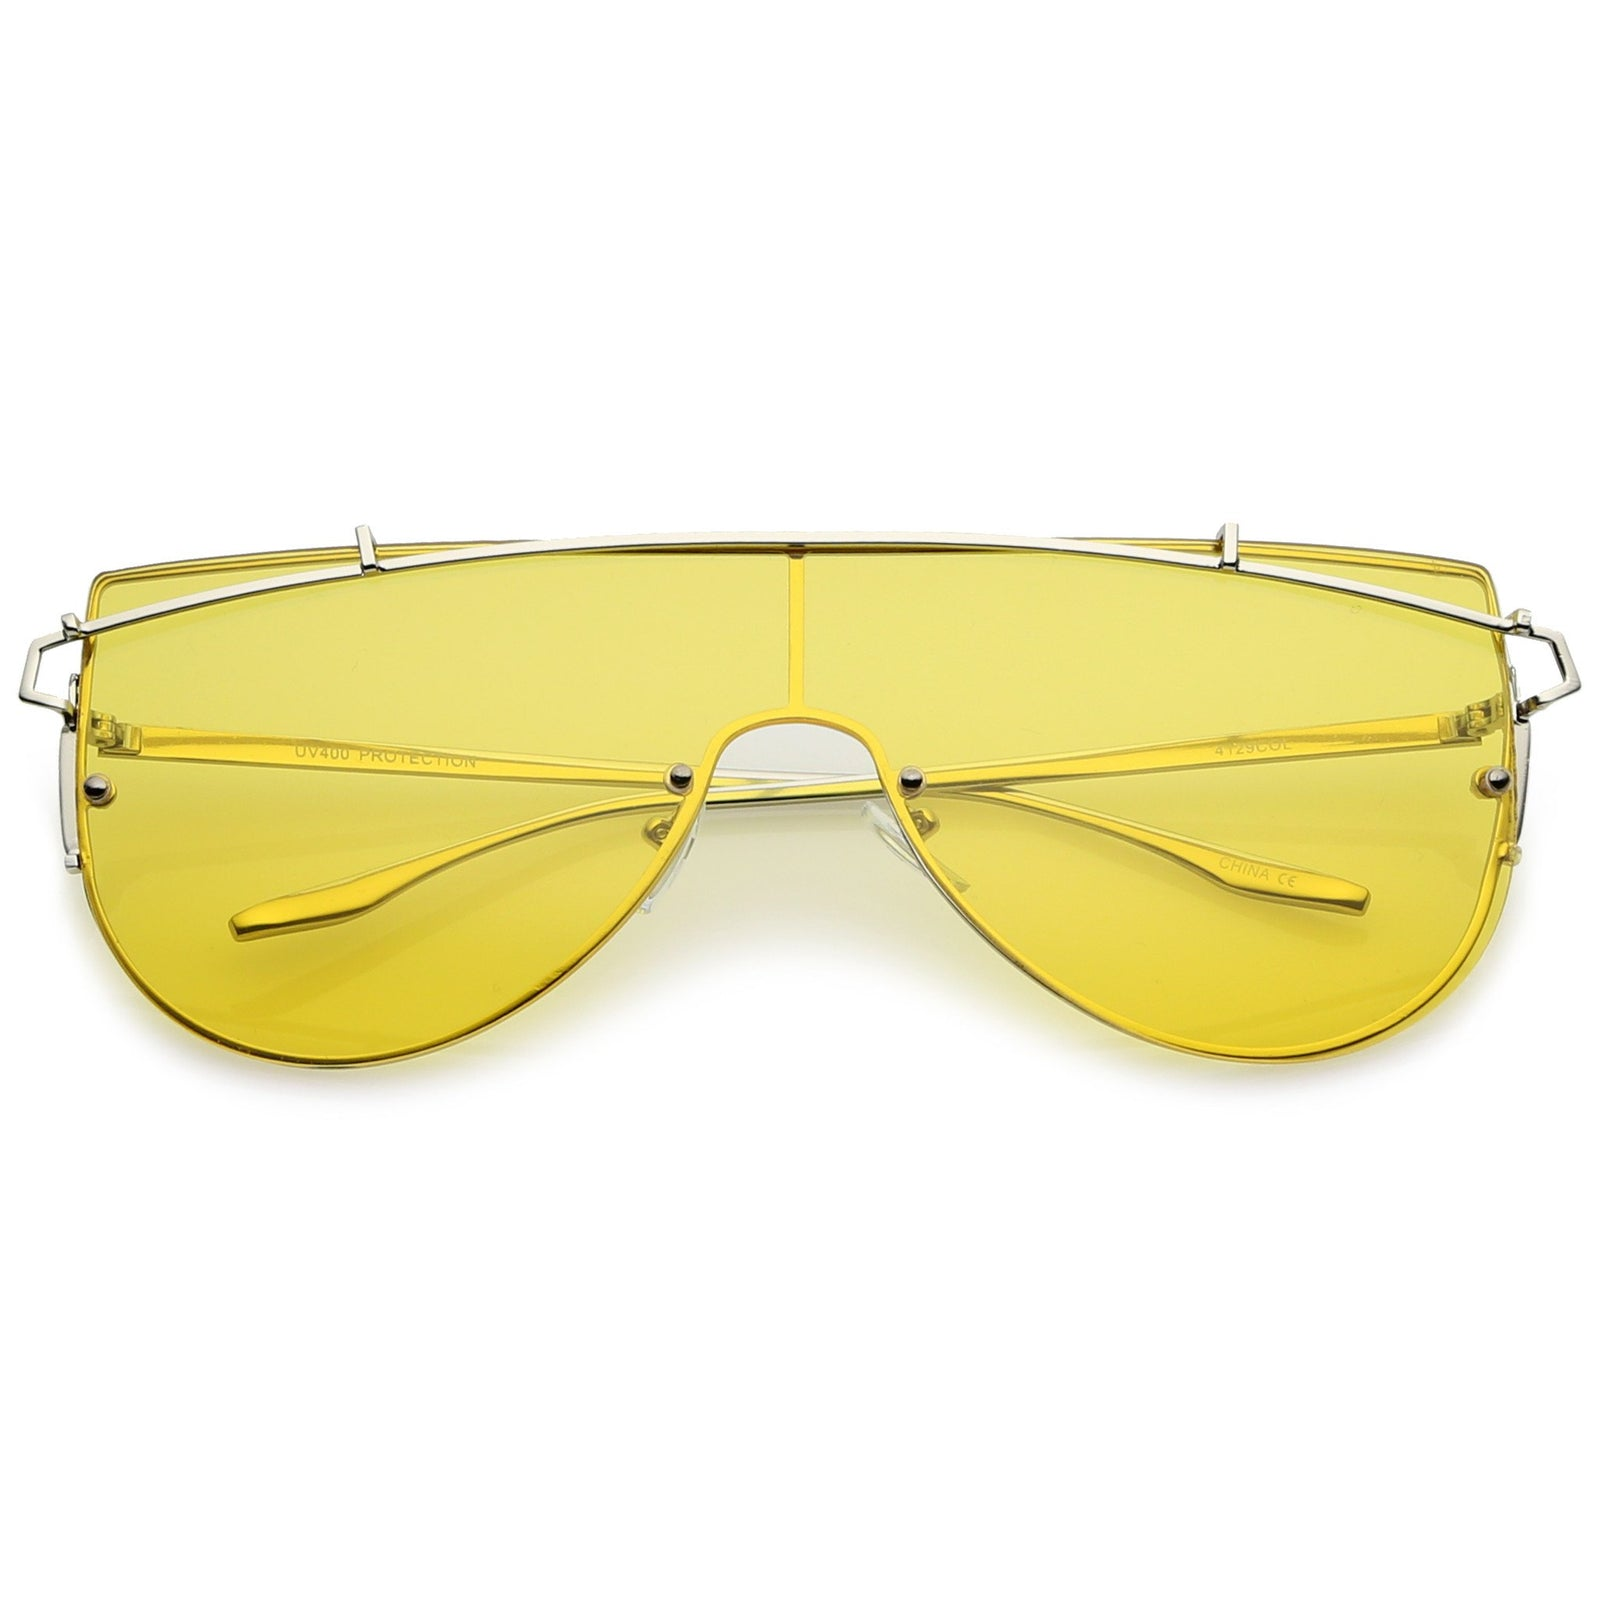 d2caf828100 Retro Modern Flat Top Shield Sunglasses A908